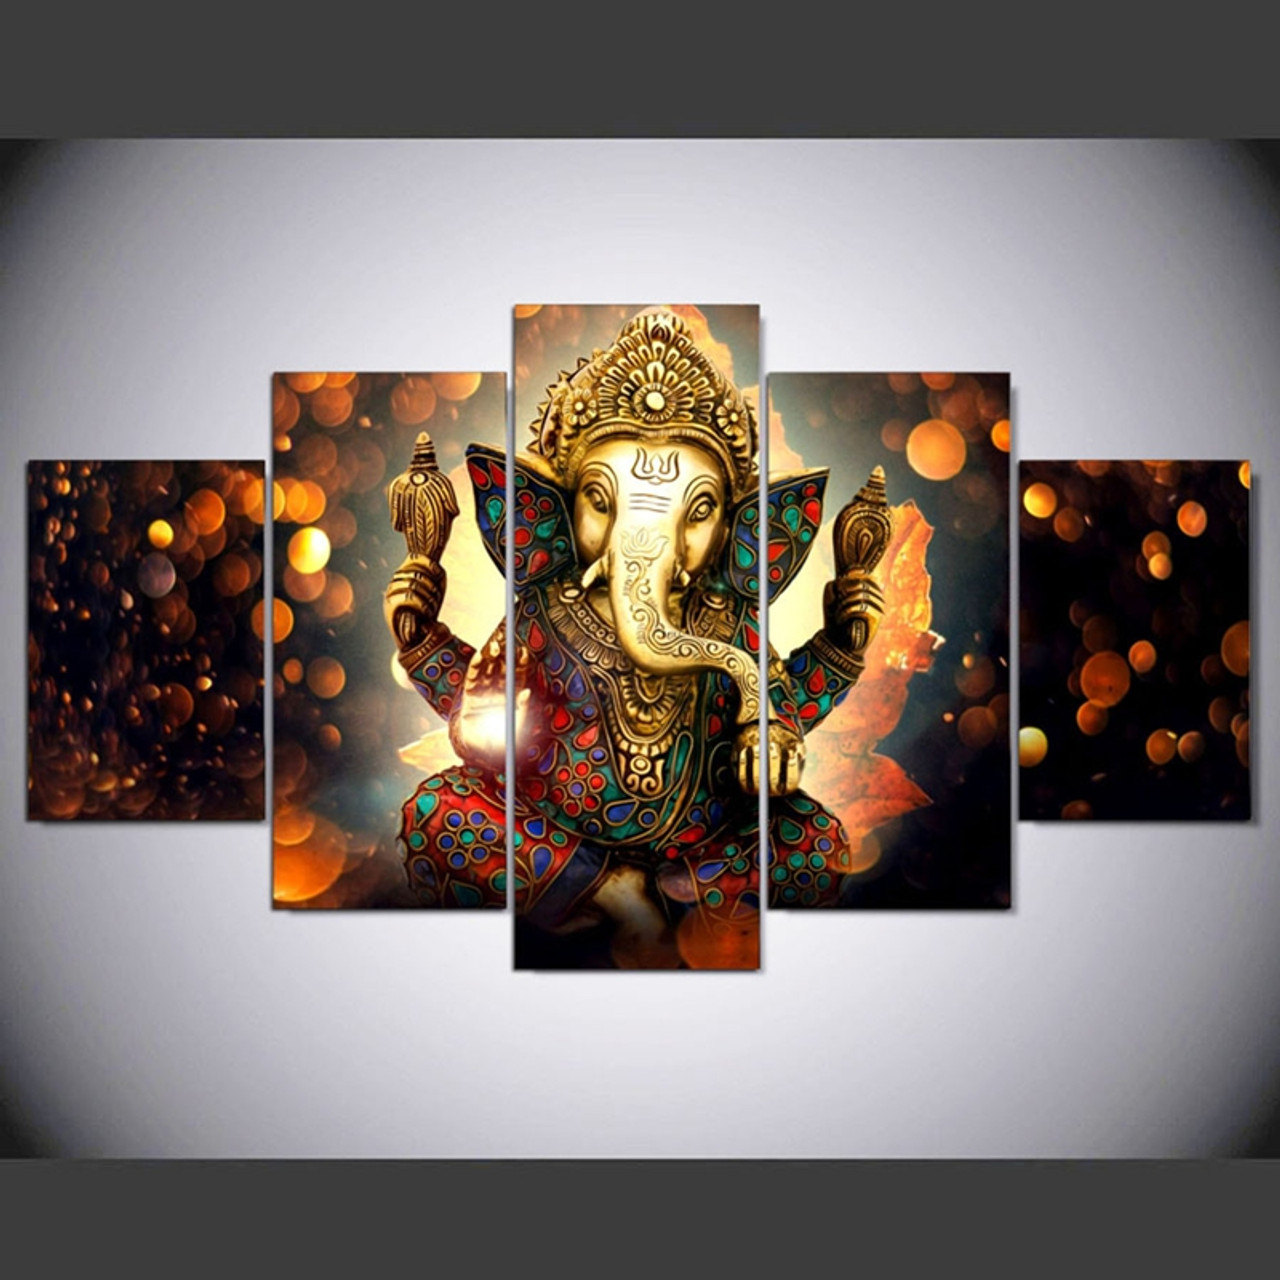 Canvas Painting Wall Art Home Decor For Living Room HD Prints 5 Pieces Elephant Trunk God ... & Canvas Painting Wall Art Home Decor For Living Room HD Prints 5 ...